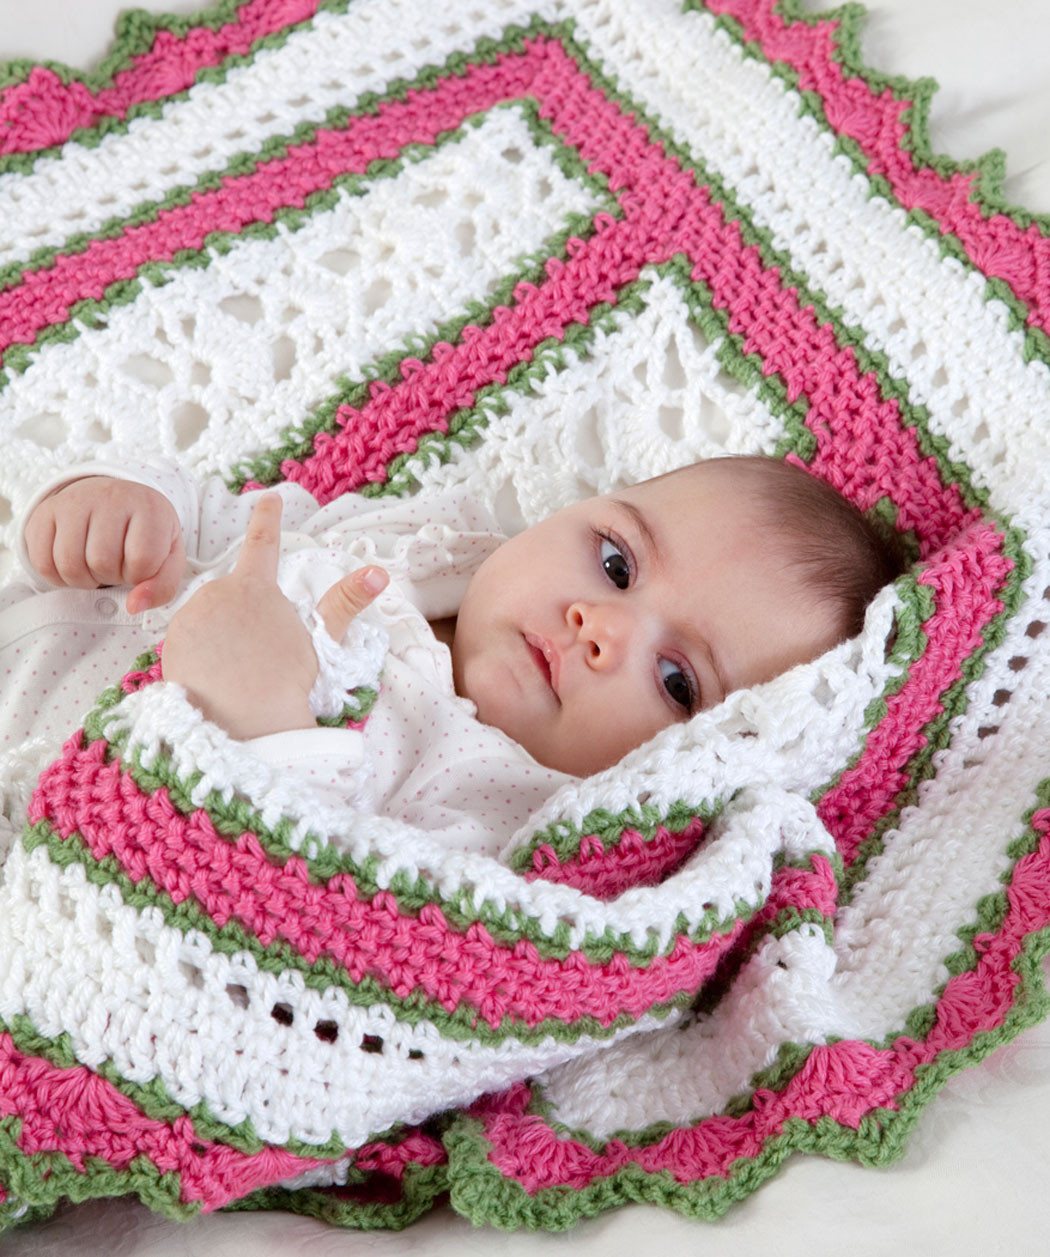 Baby Boy Crochet Blanket Patterns Best Of 10 Beautiful Baby Blanket Free Patterns Of Baby Boy Crochet Blanket Patterns New Free Baby Boy Crochet Blanket Patterns